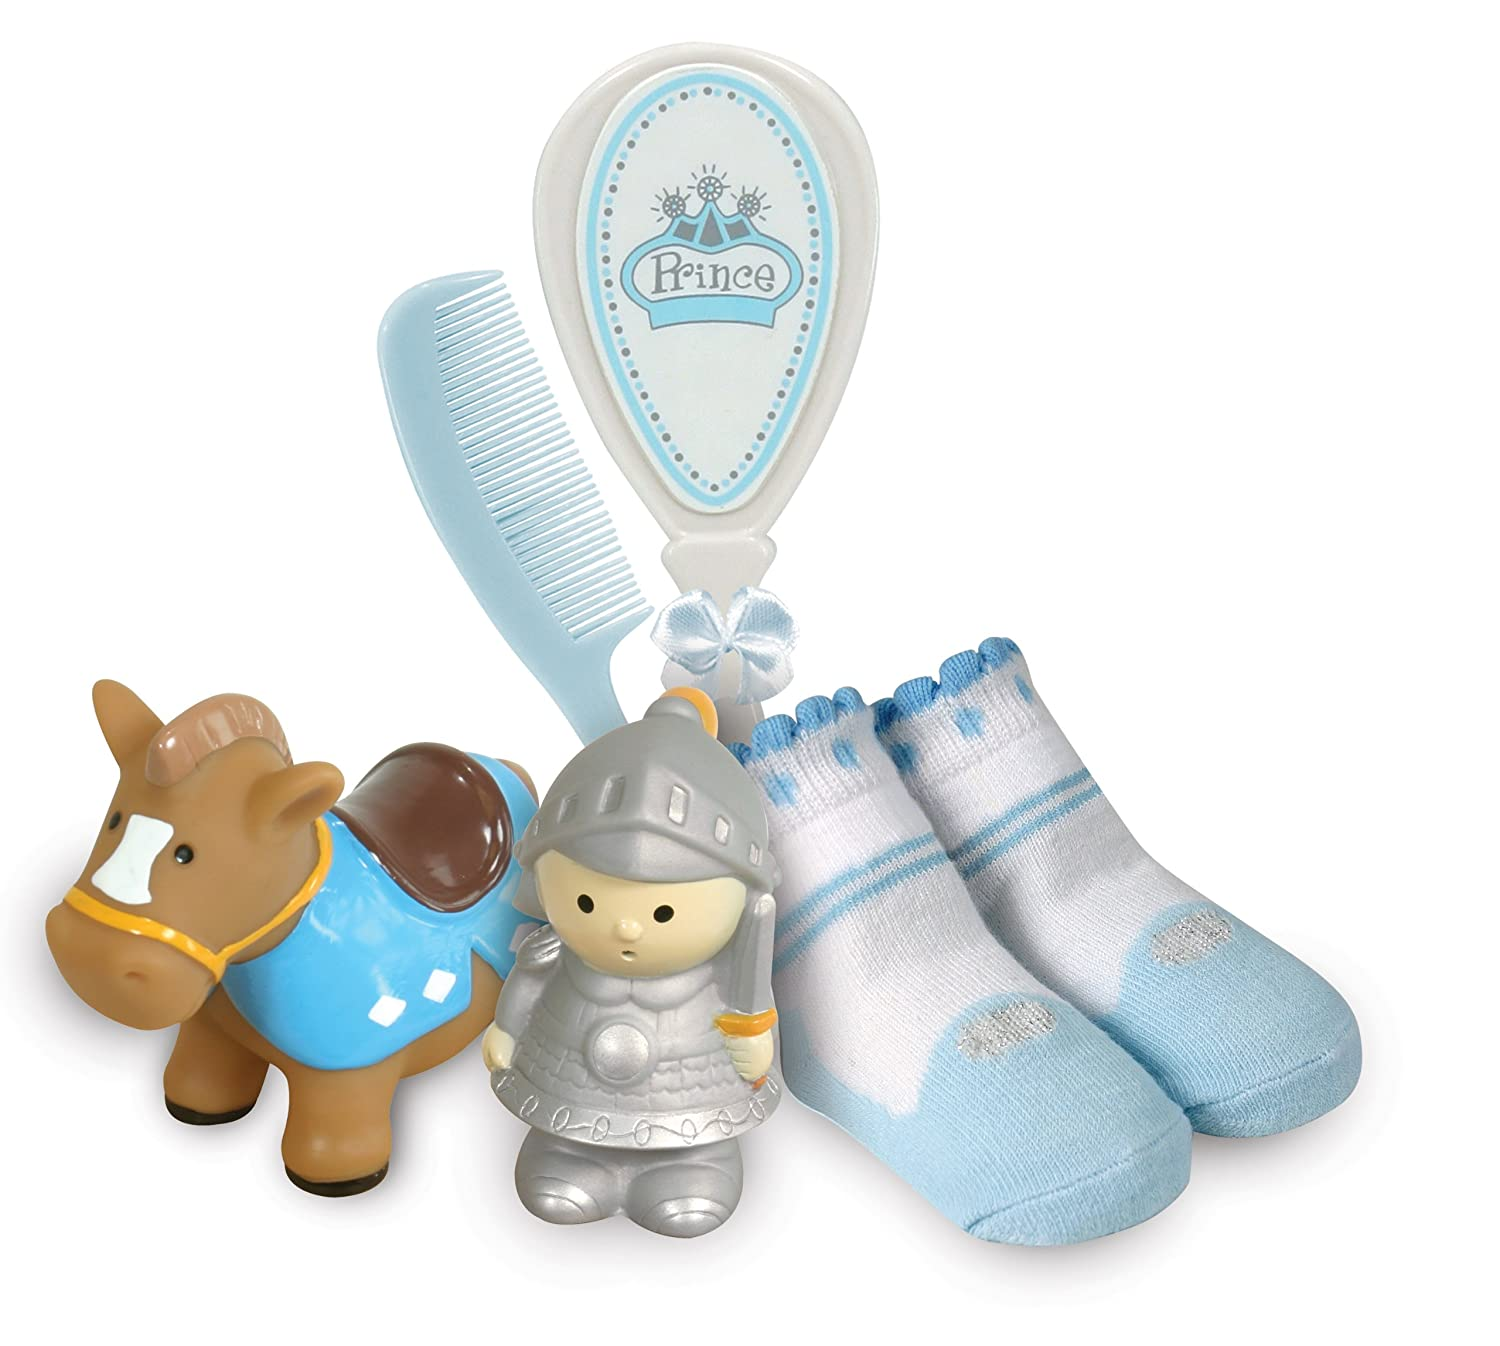 Stephan Baby Bath Squirters, Bootie Socks and Brush/Comb Gift Set, Little Prince 625493